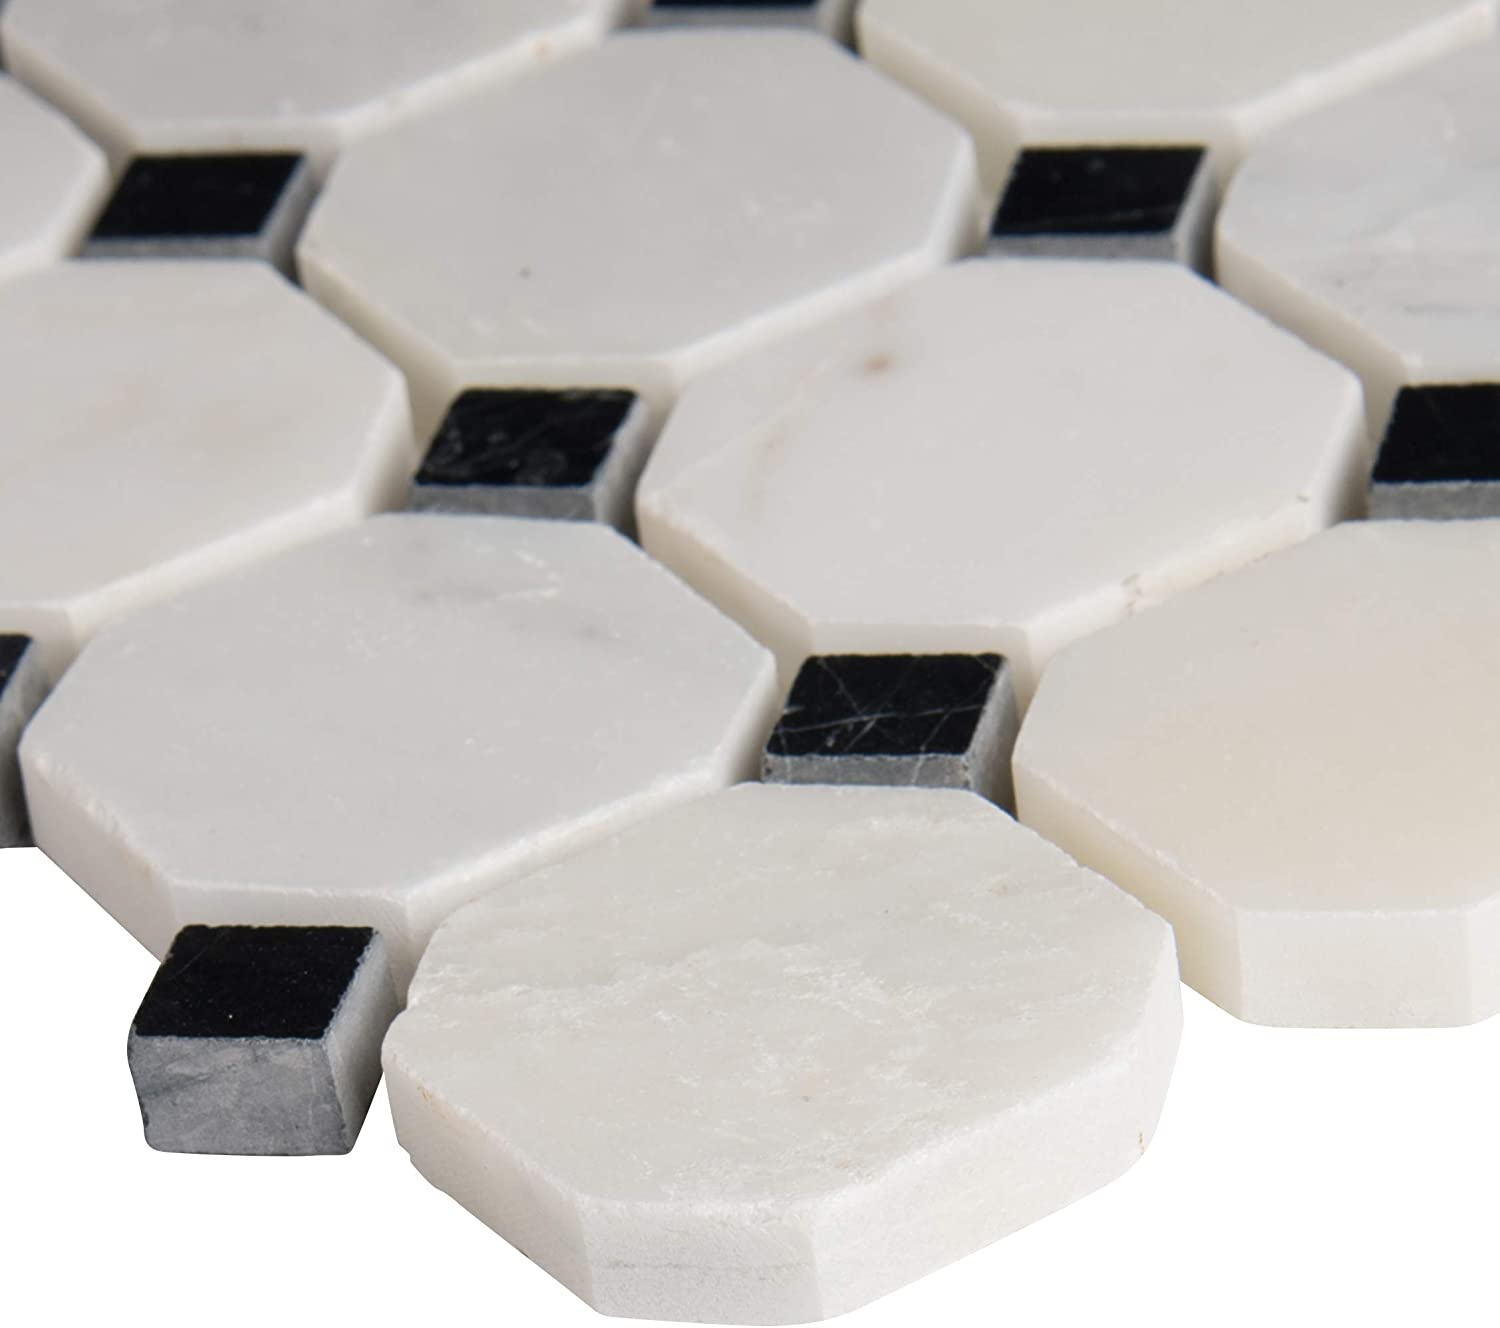 10 Sq. Ft. case Stunning Exquisite i Octagon in. X White 12 Limited time for Rapid rise free shipping